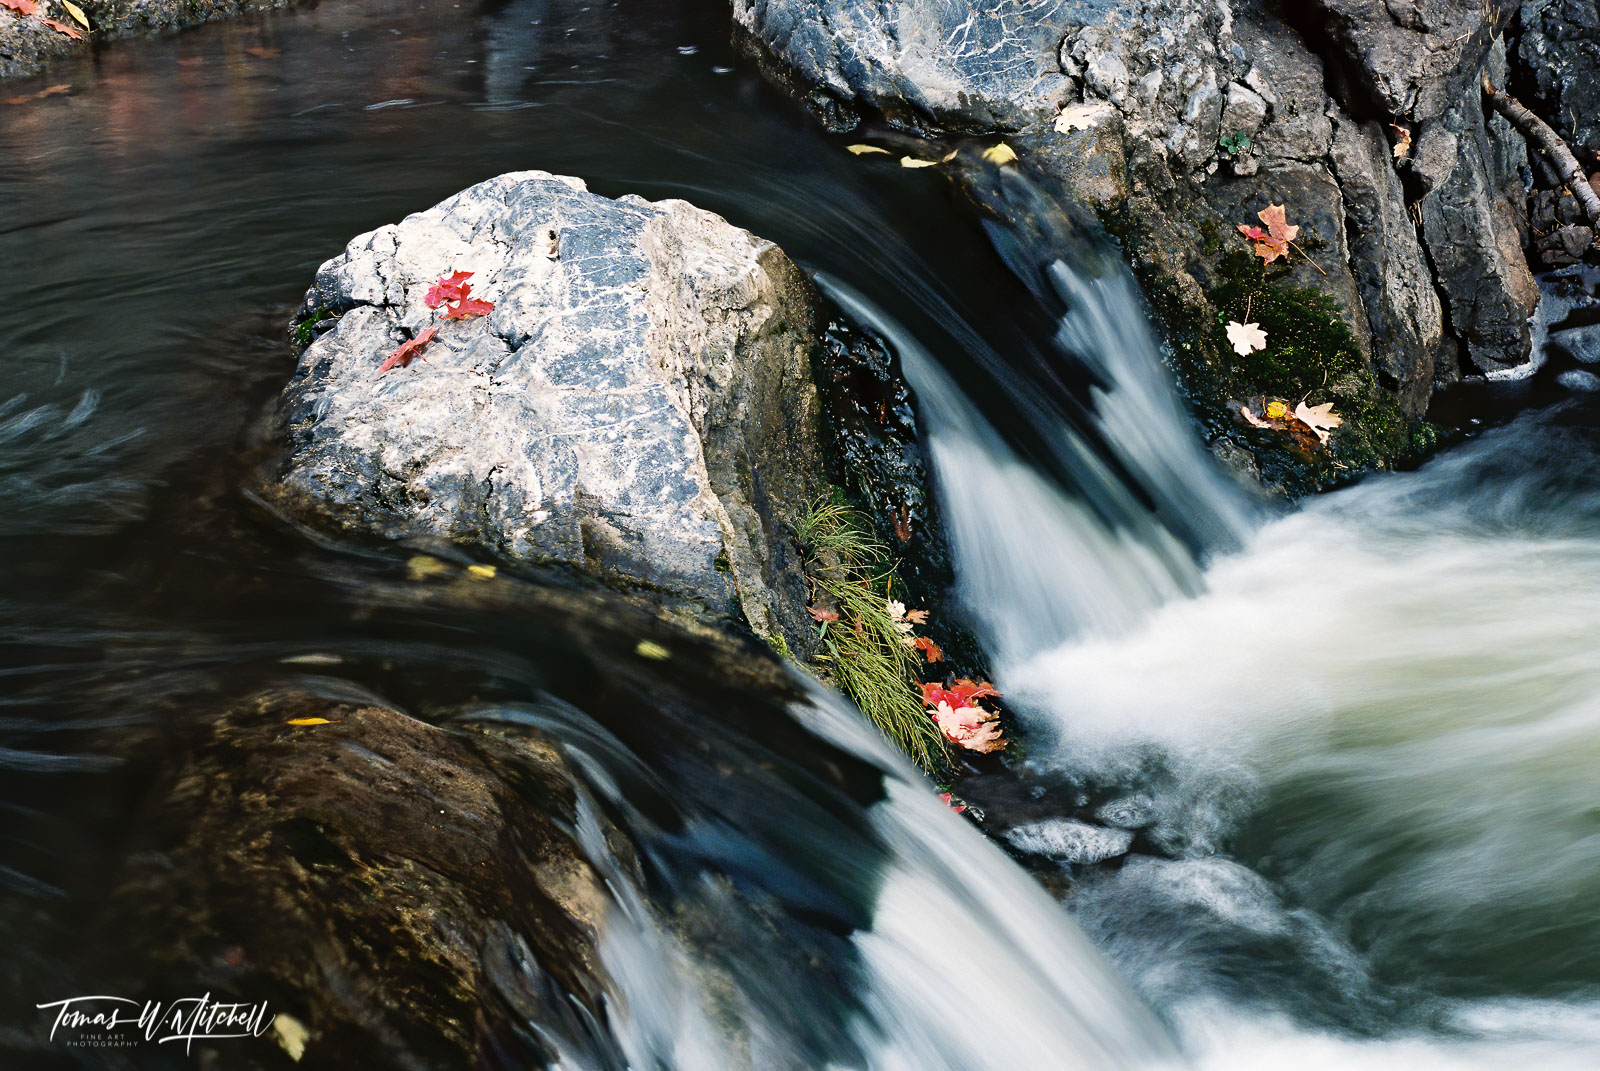 limited edition, fine art, prints, photograph, santaquin canyon, utah, creek, maple, trees, colors, leaves, stream, water fall, water, rocks, blurred, grass, rock , photo